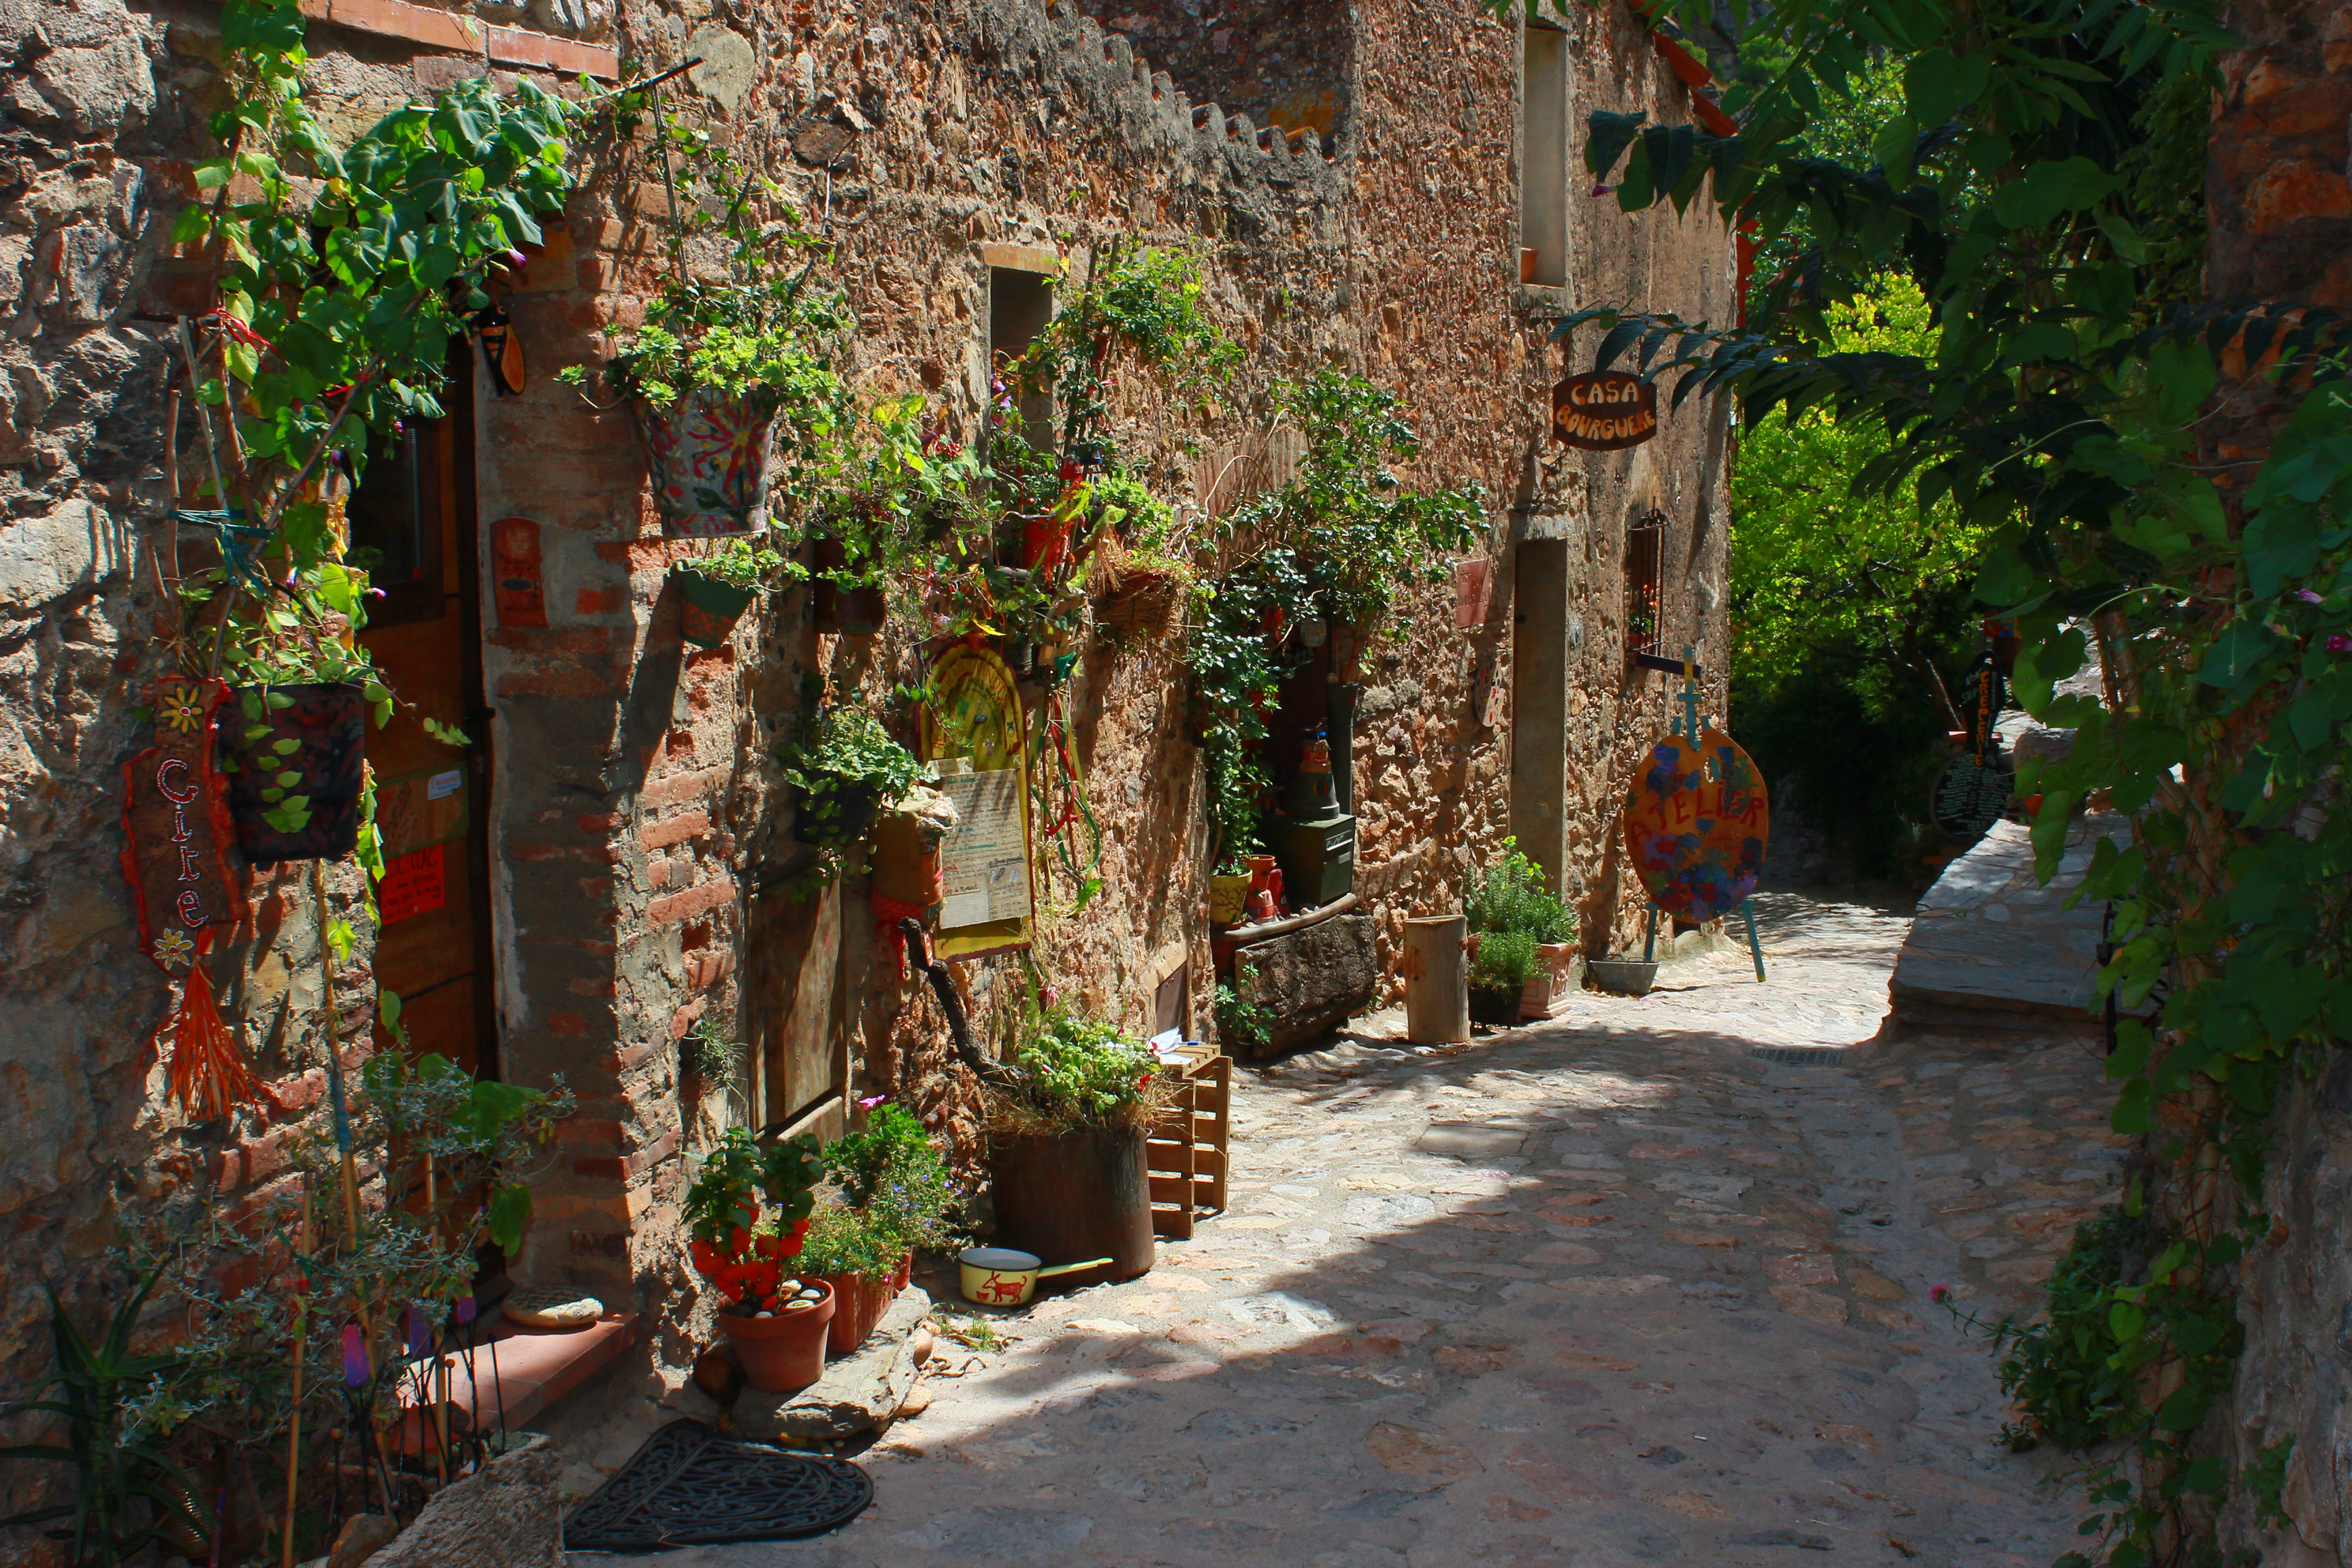 http://upload.wikimedia.org/wikipedia/commons/6/62/Castelnou_(66),_un_des_plus_beaux_village_de_France_35.jpg